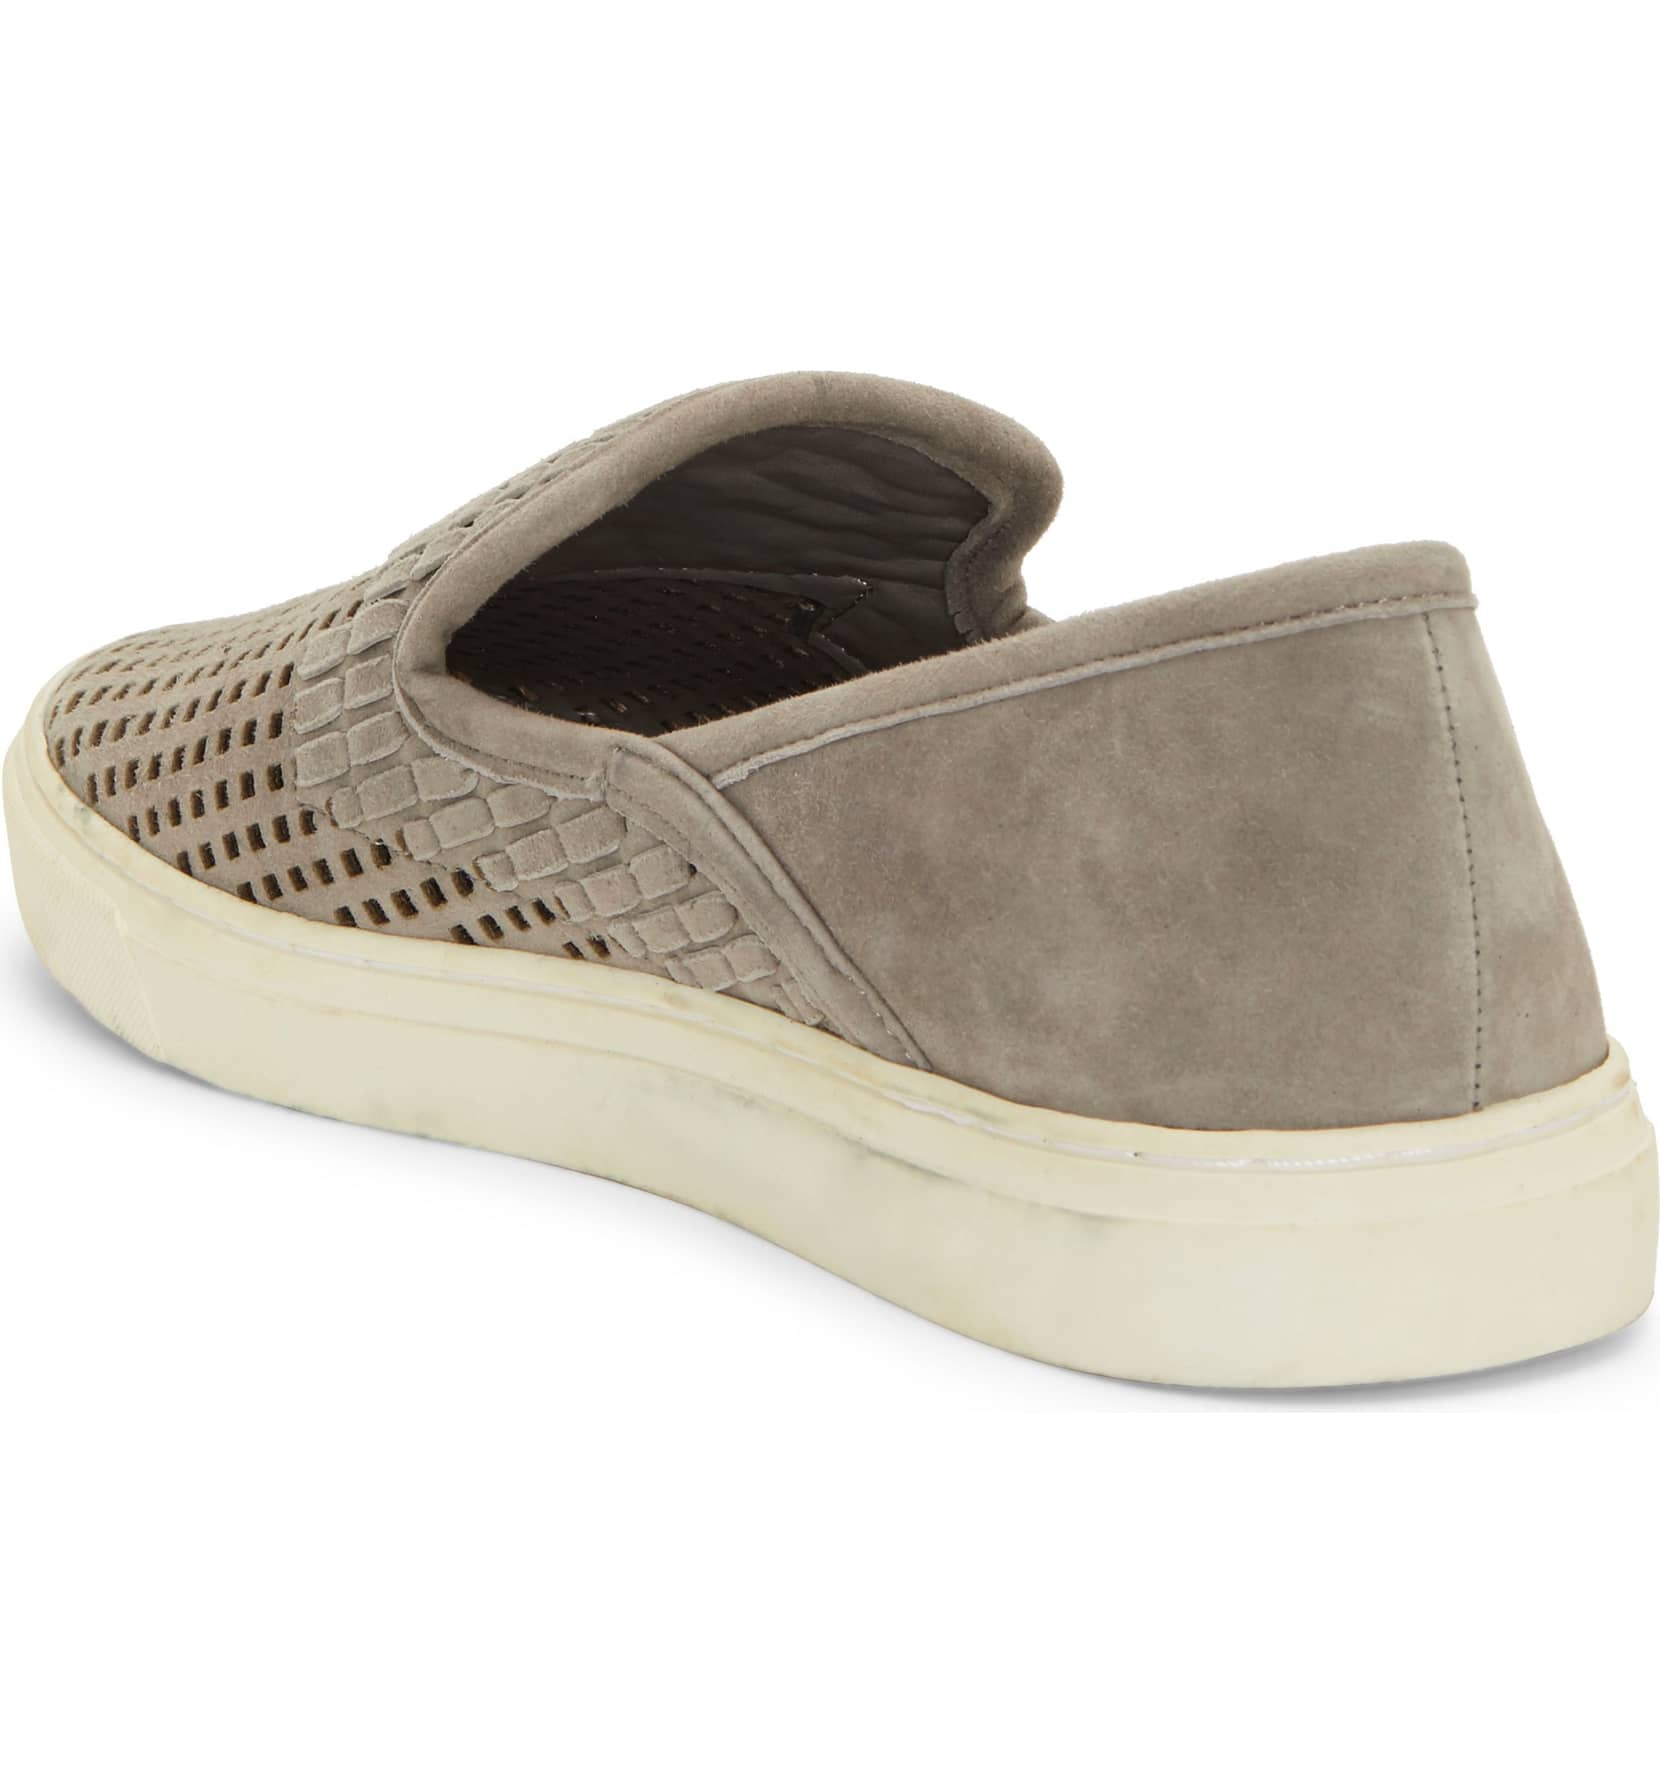 Vince-Camuto-Bristie-Storm-Grey-Leather-Woven-White-Sole-Slip-On-Sneakers thumbnail 12